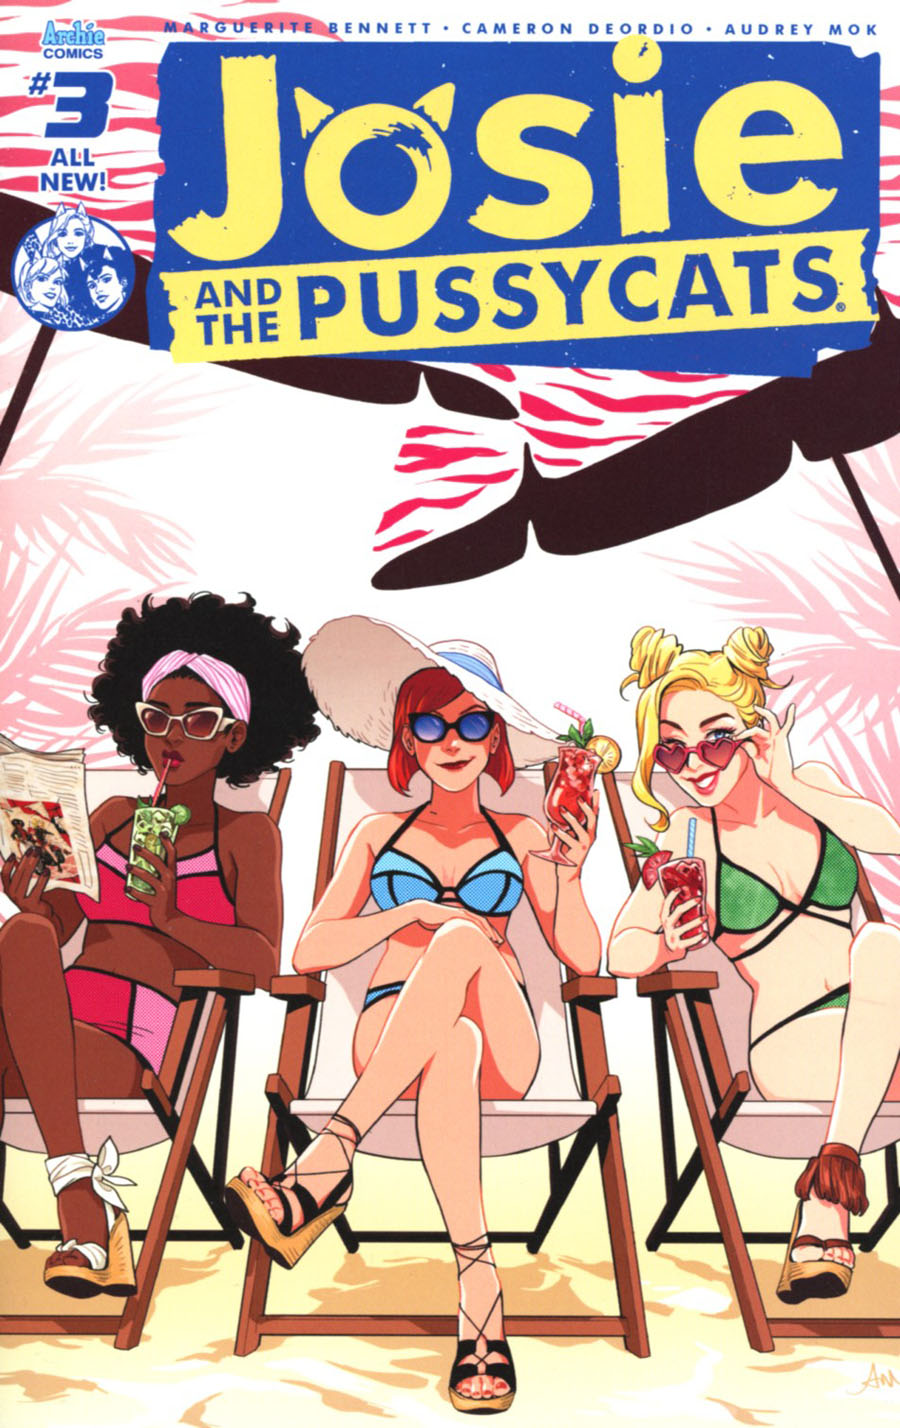 Josie And The Pussycats Vol 2 #3 Cover A Regular Audrey Mok Cover